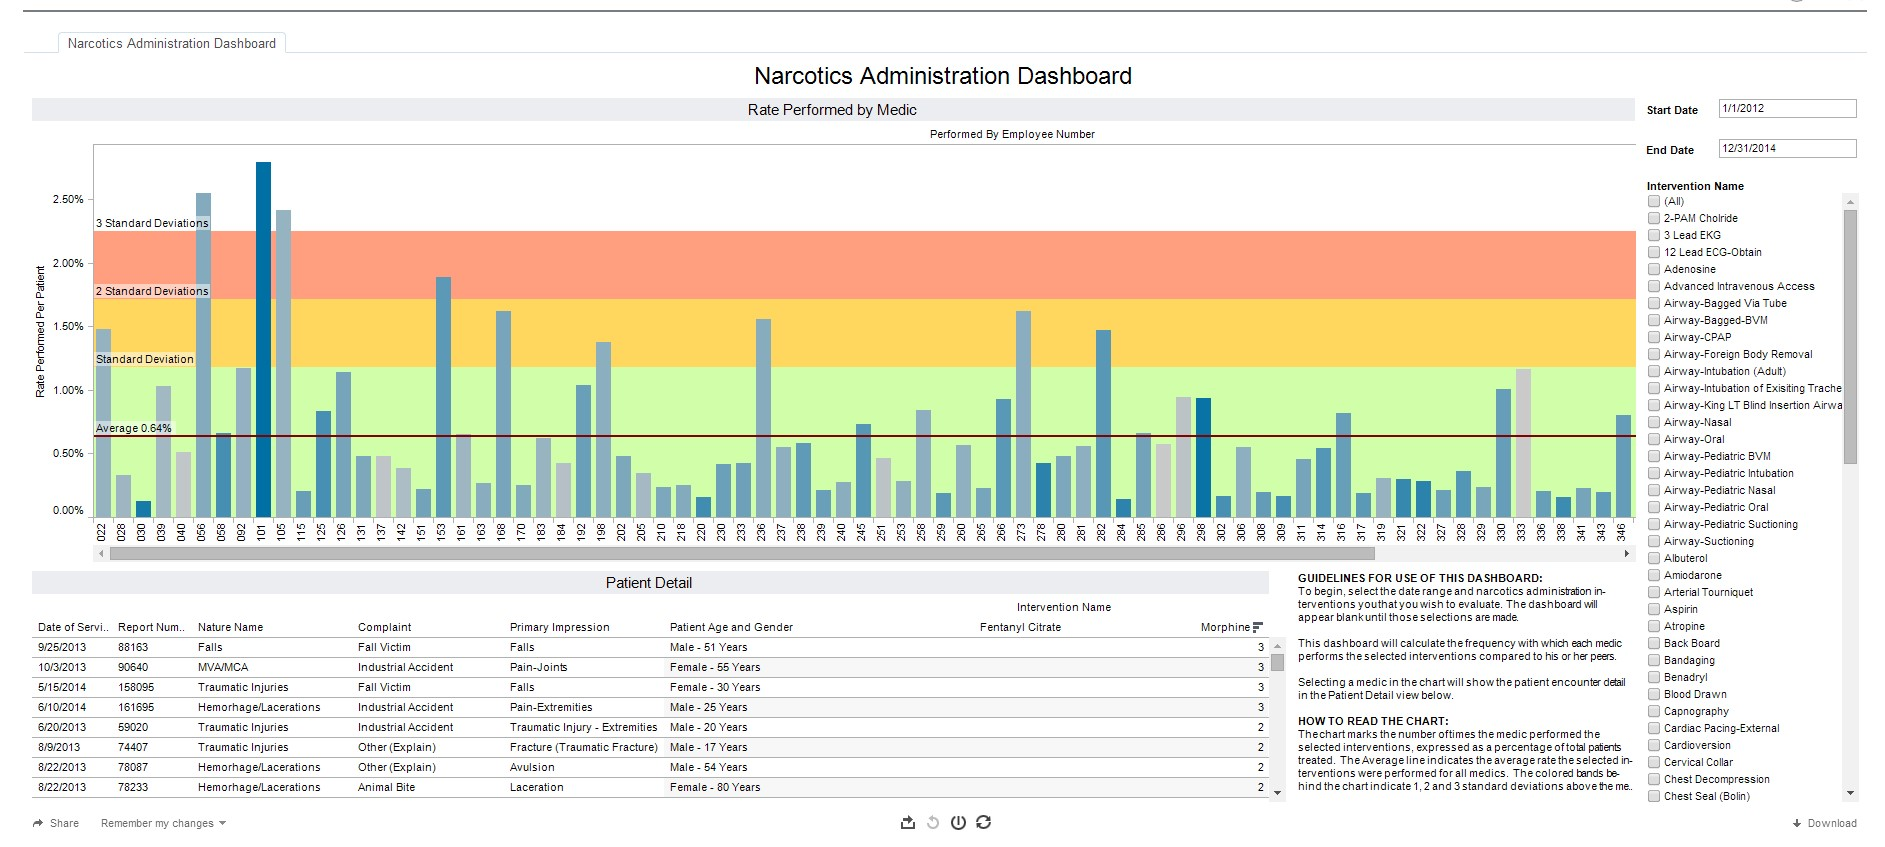 6 Dashboards to Improve Clinical Outcomes